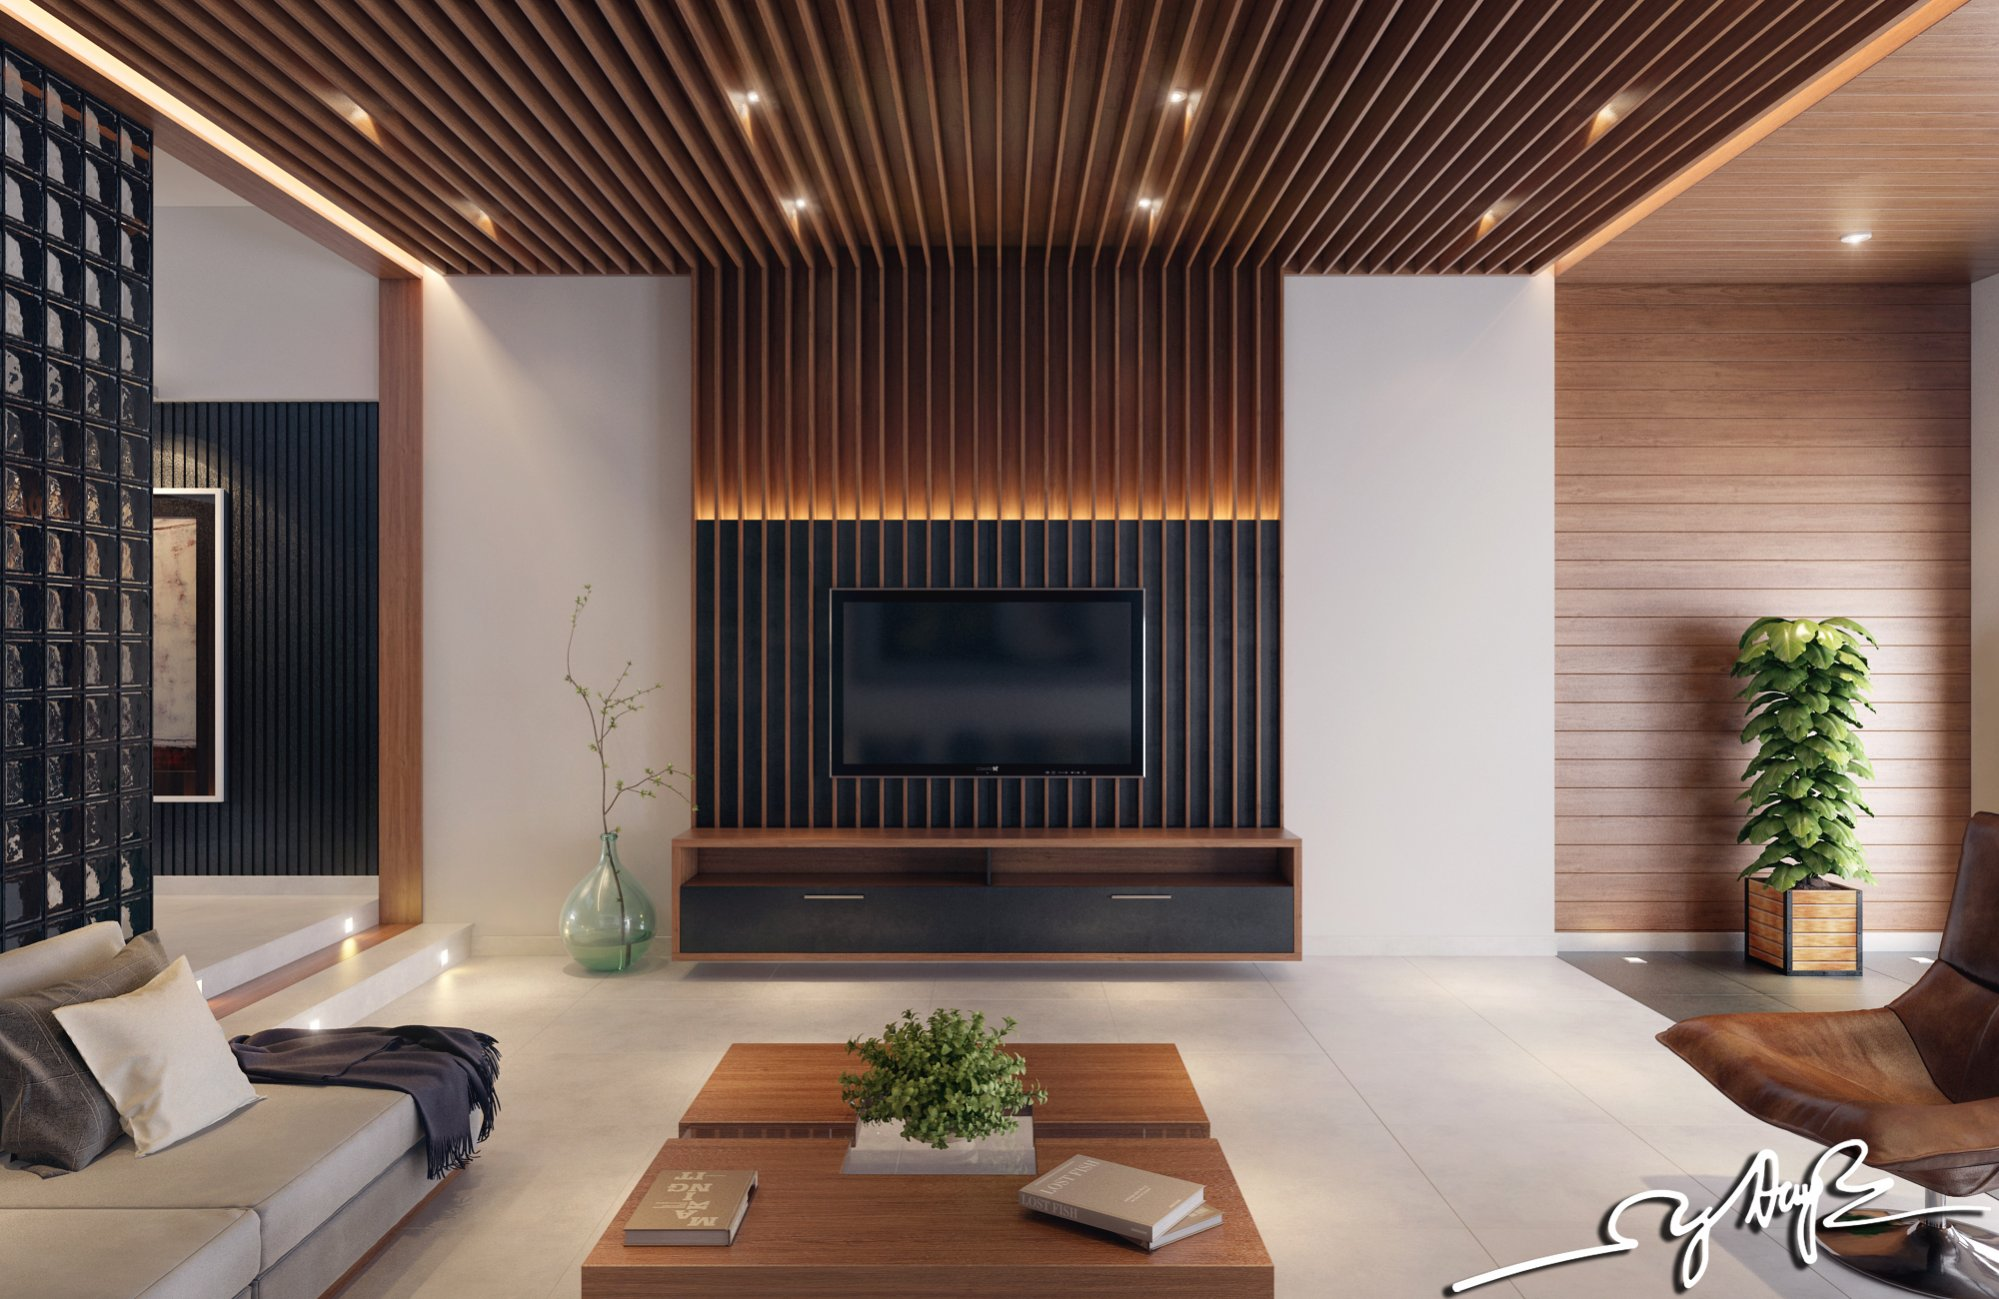 Beau Interior Design Close To Nature: Rich Wood Themes And Indoor Vertical  Gardens